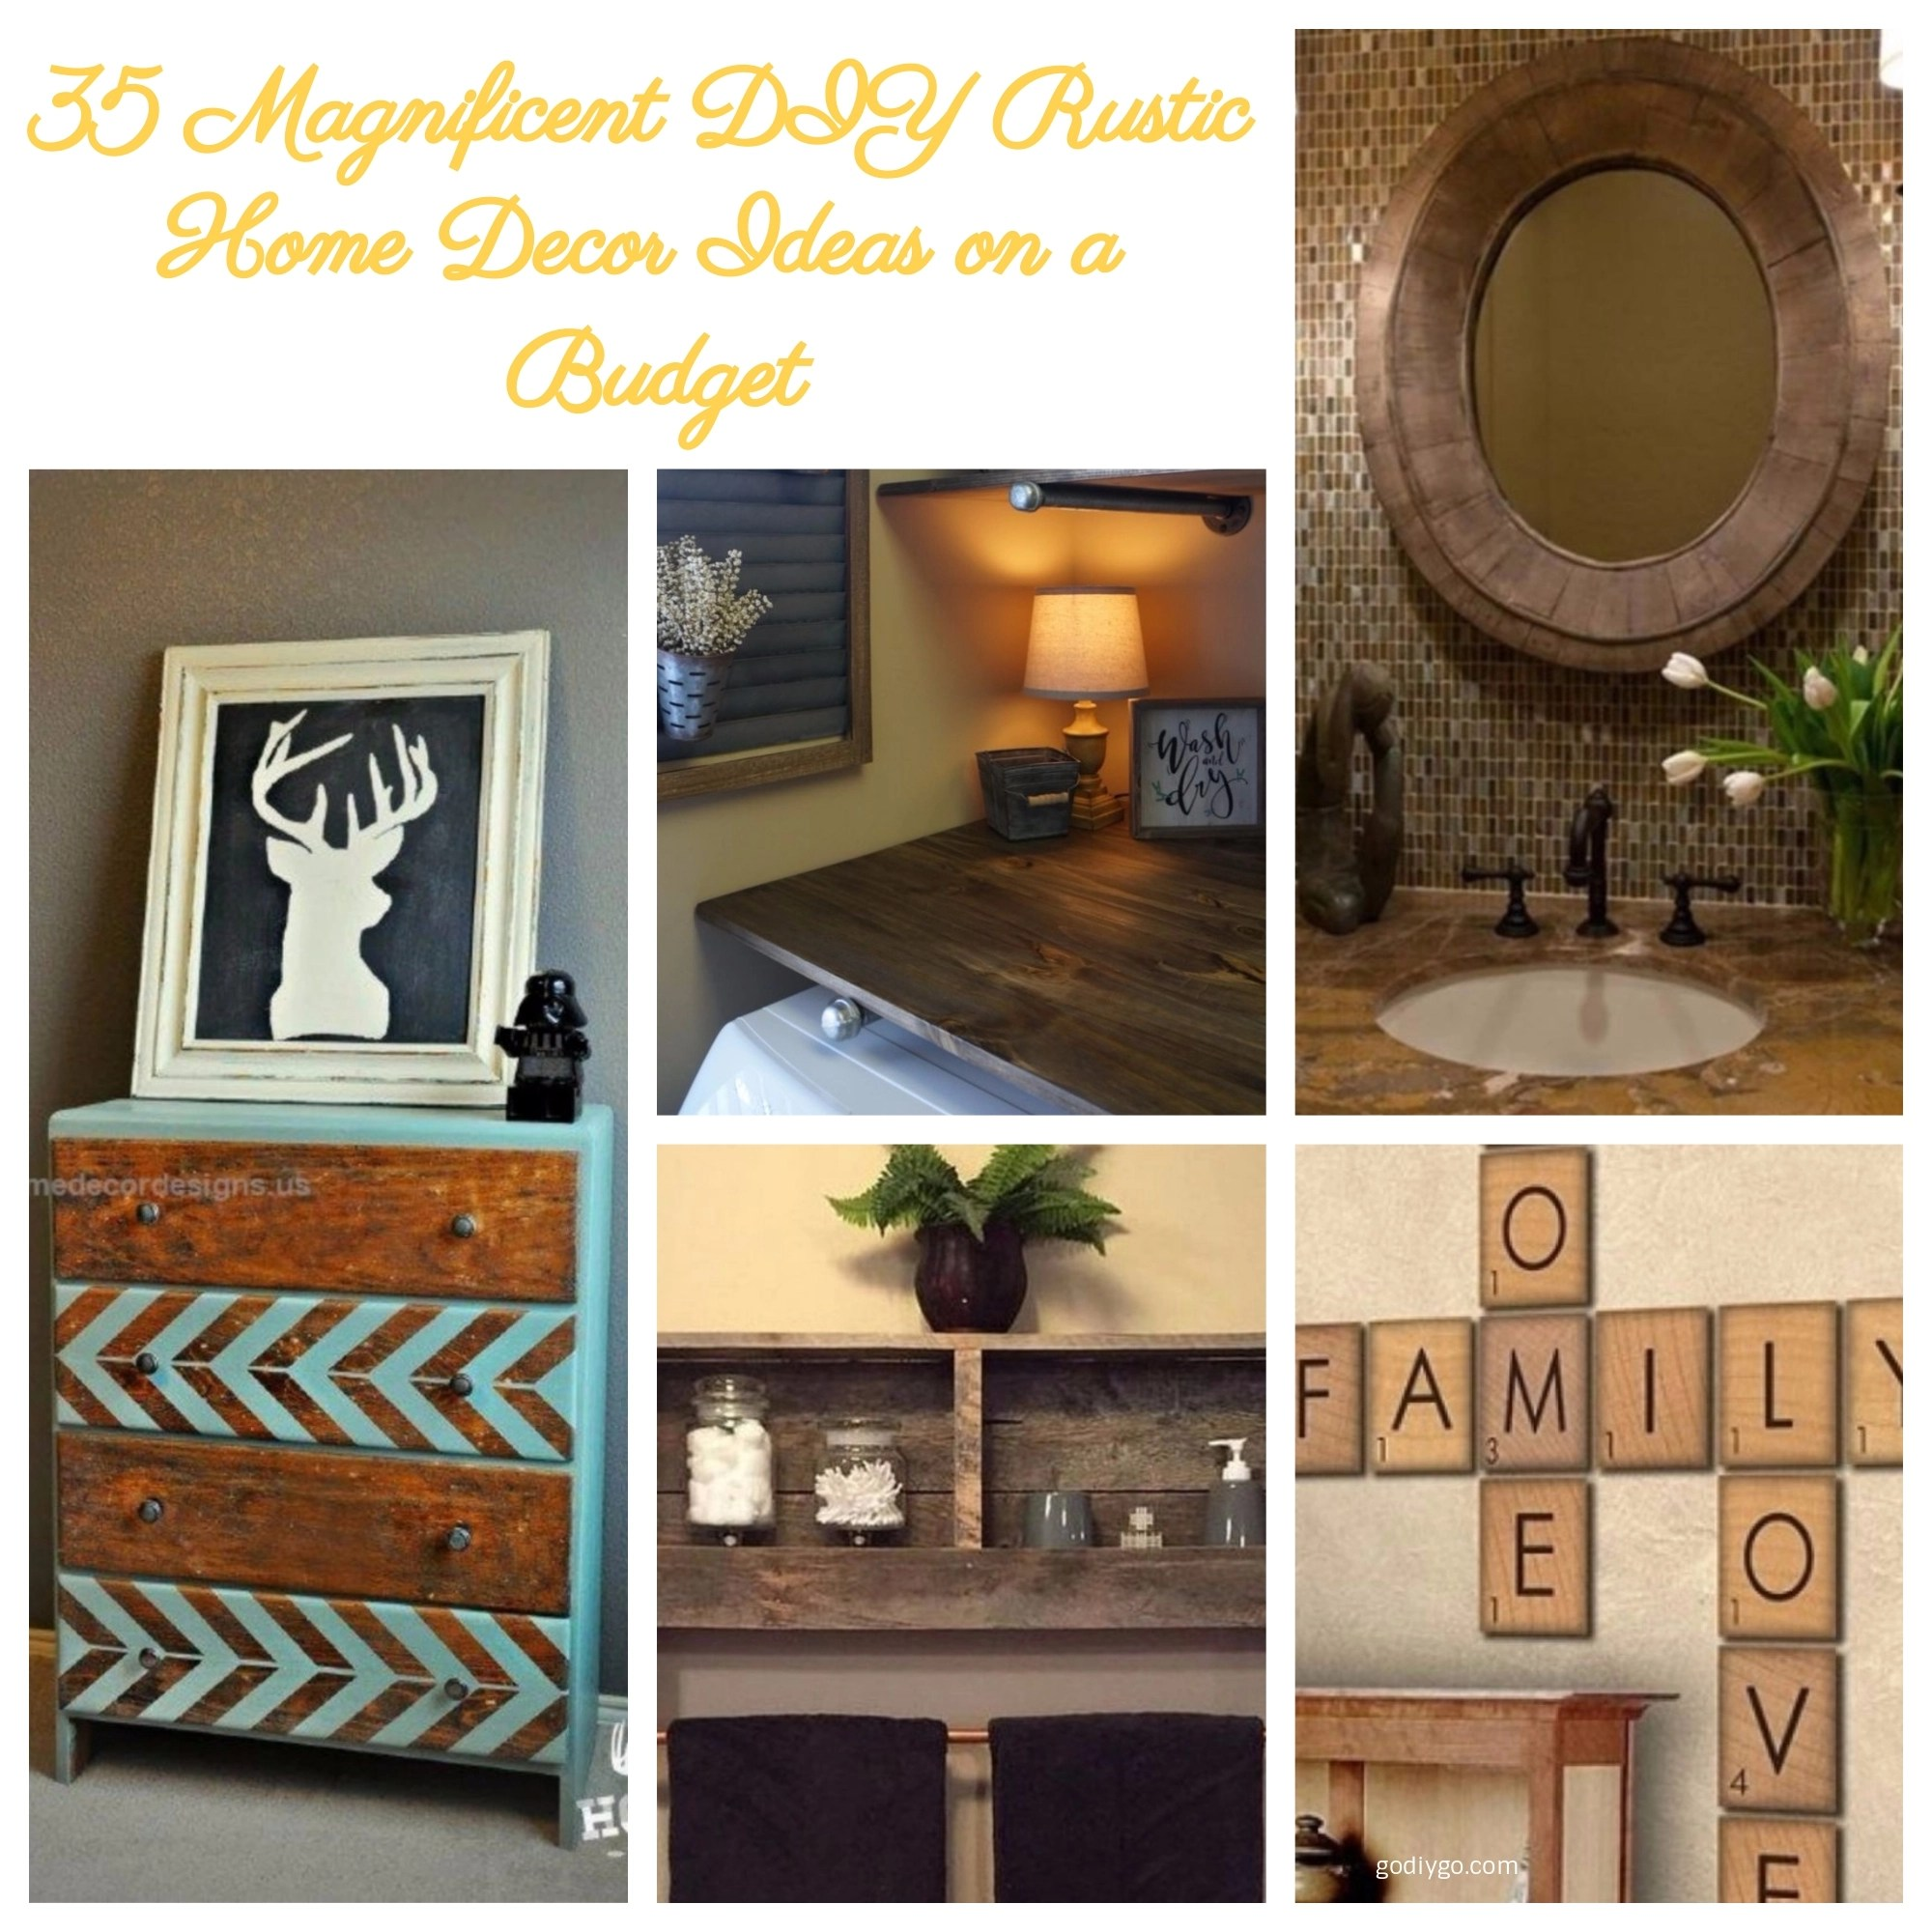 35 magnificent diy rustic home decor ideas on a budget for Home decor on a budget